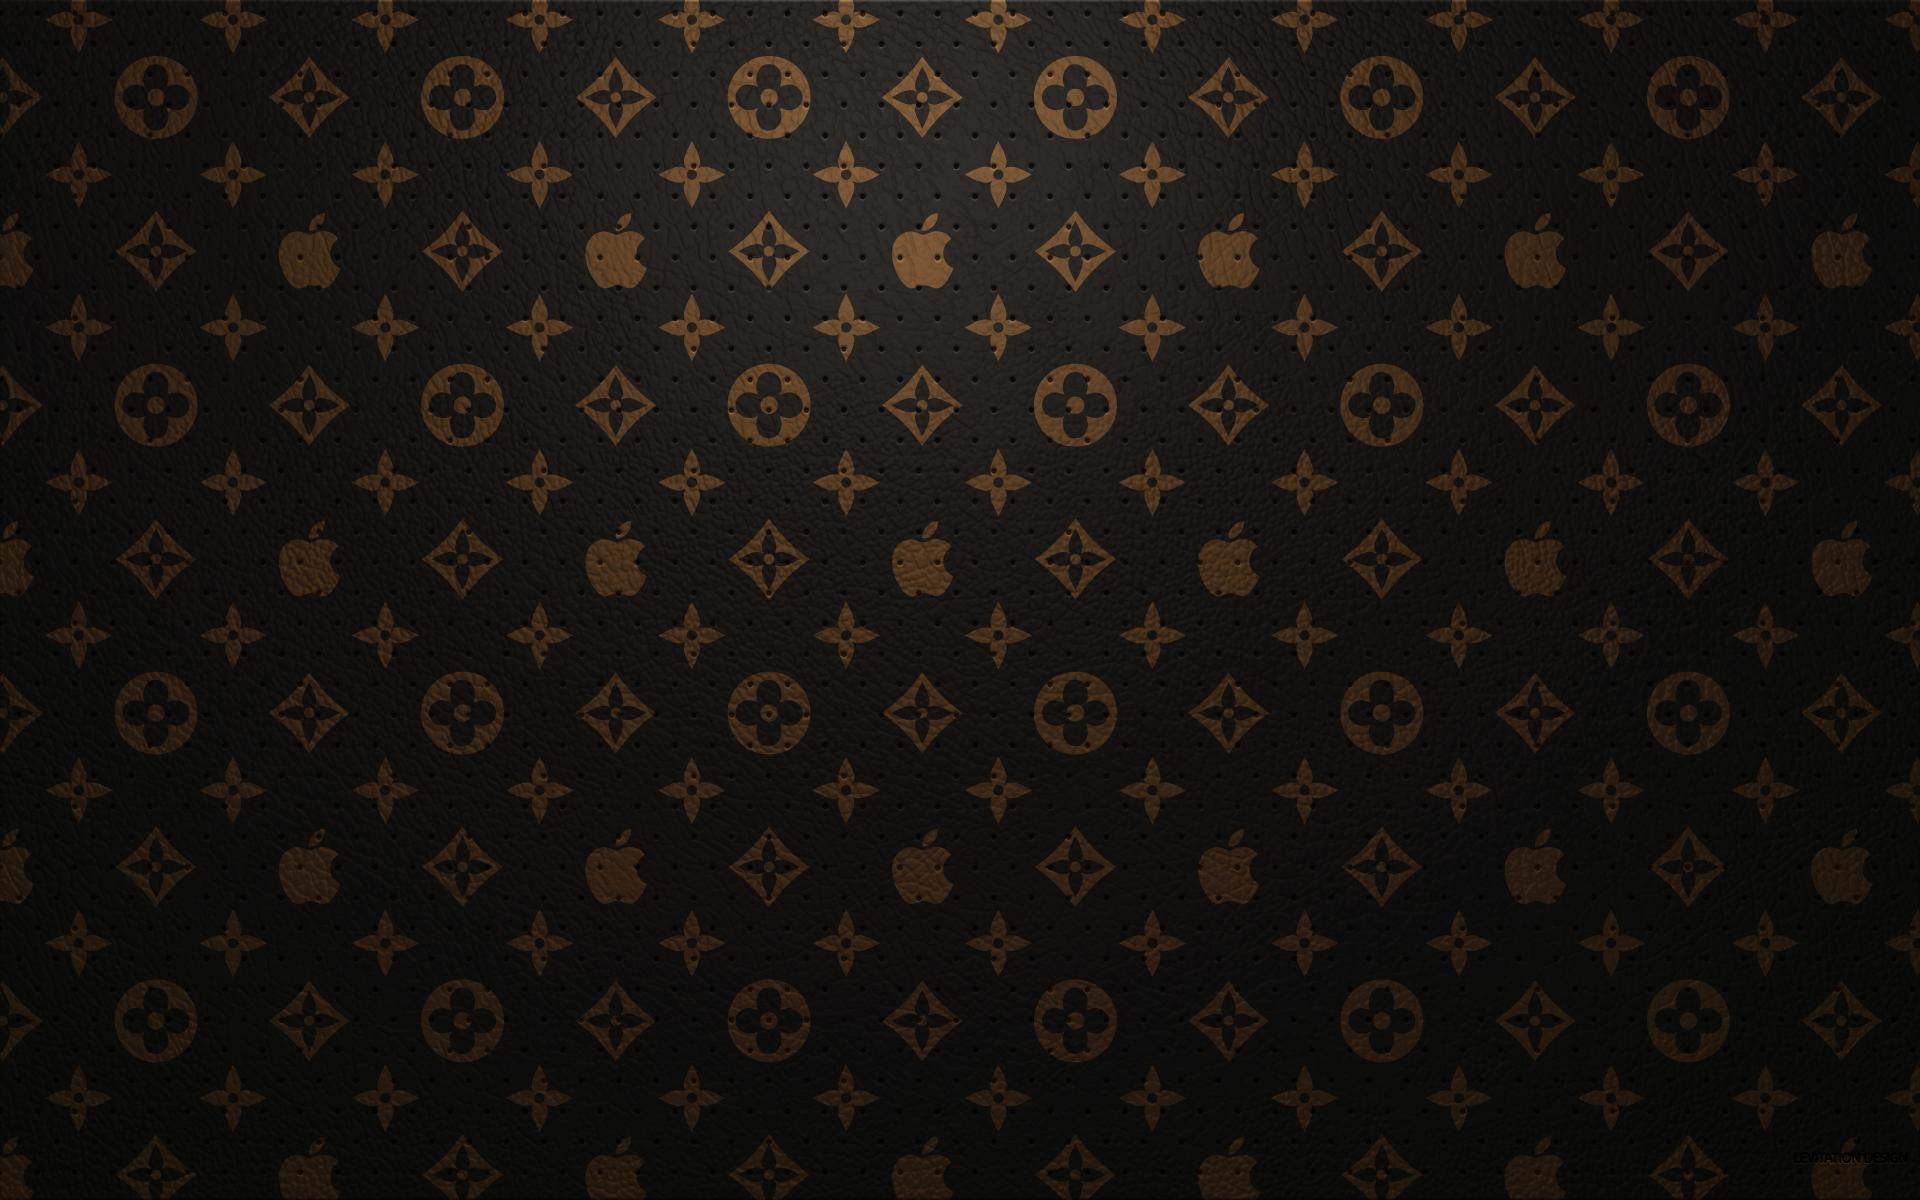 Louis vuitton wallpapers wallpaper cave for Expensive wallpaper